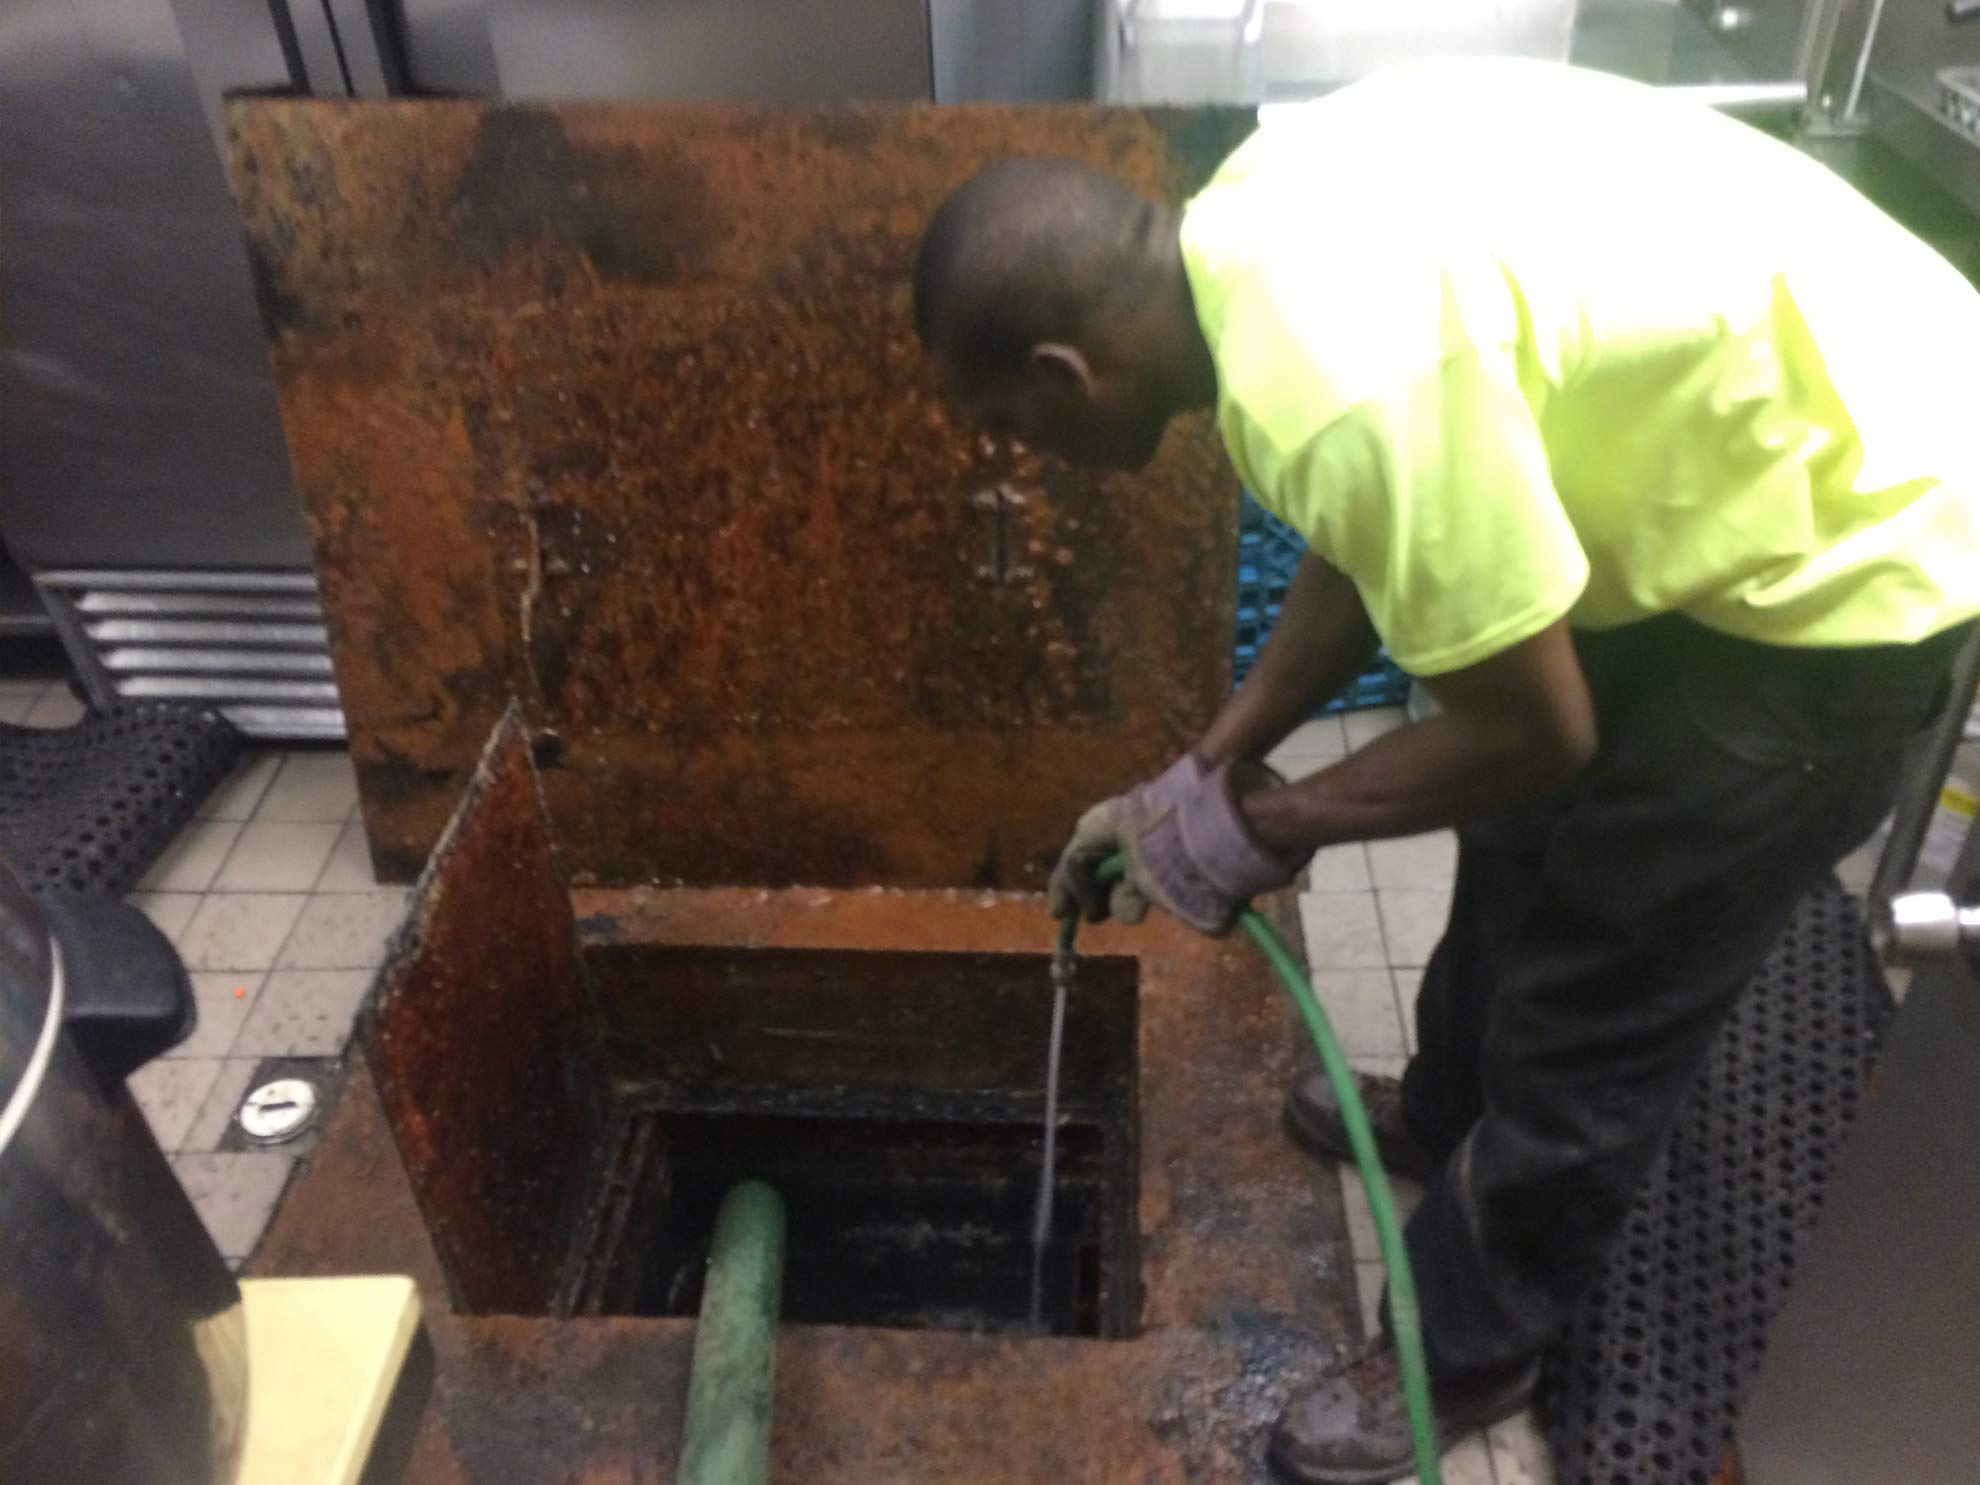 South Florida Grease Trap Cleaning Grease Trap Pumping